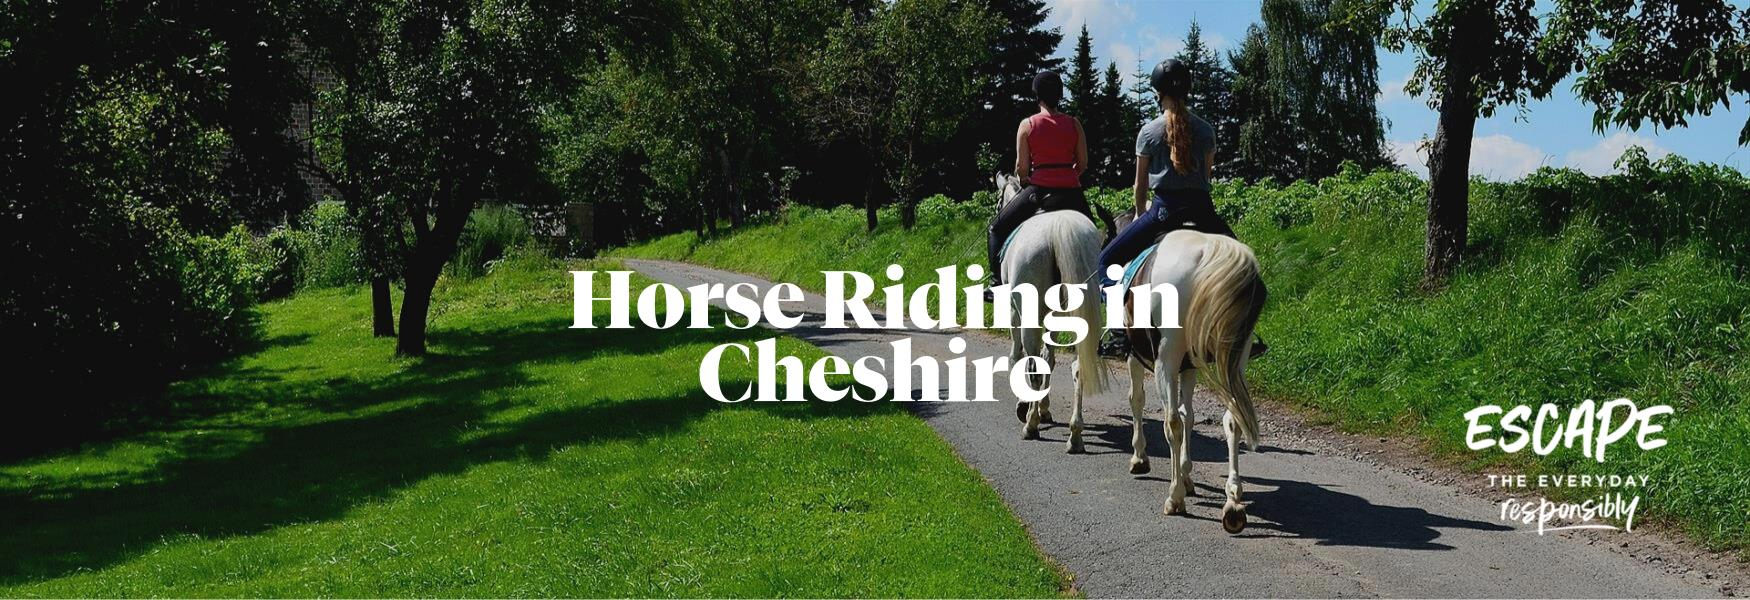 Horse Riding in Cheshire